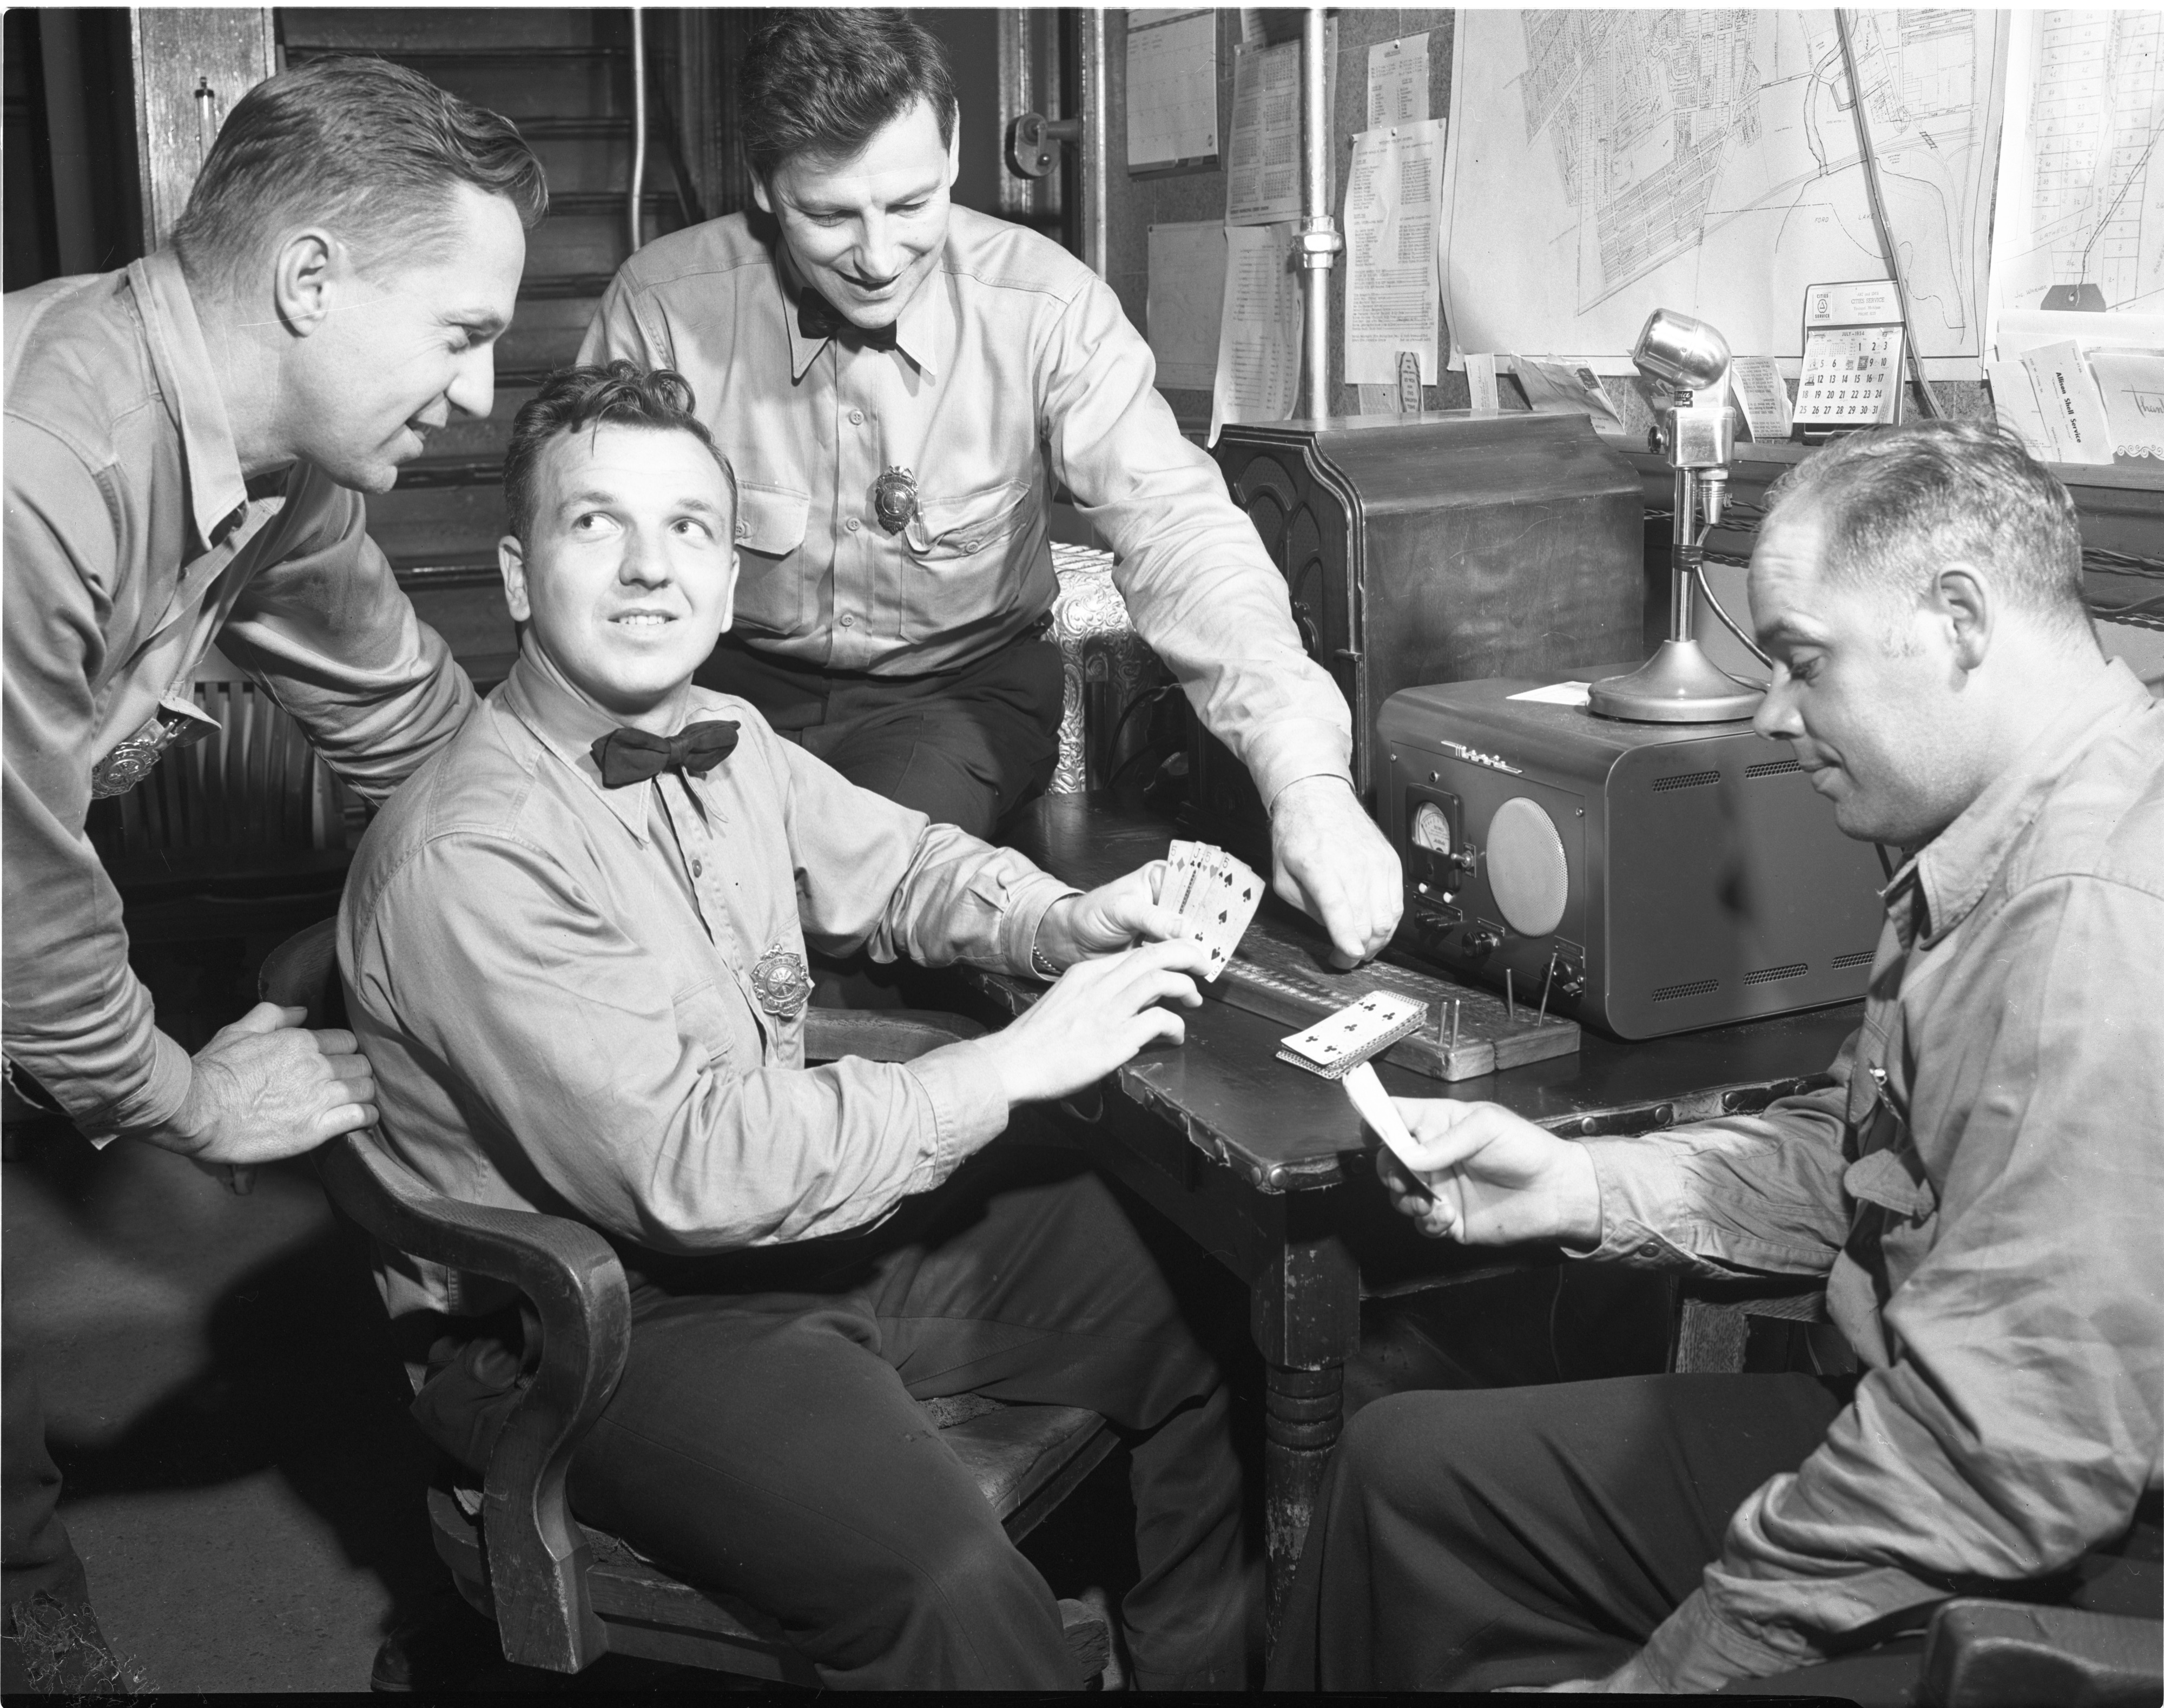 Ypsilanti Firemen Playing Cribbage, October 1954 image